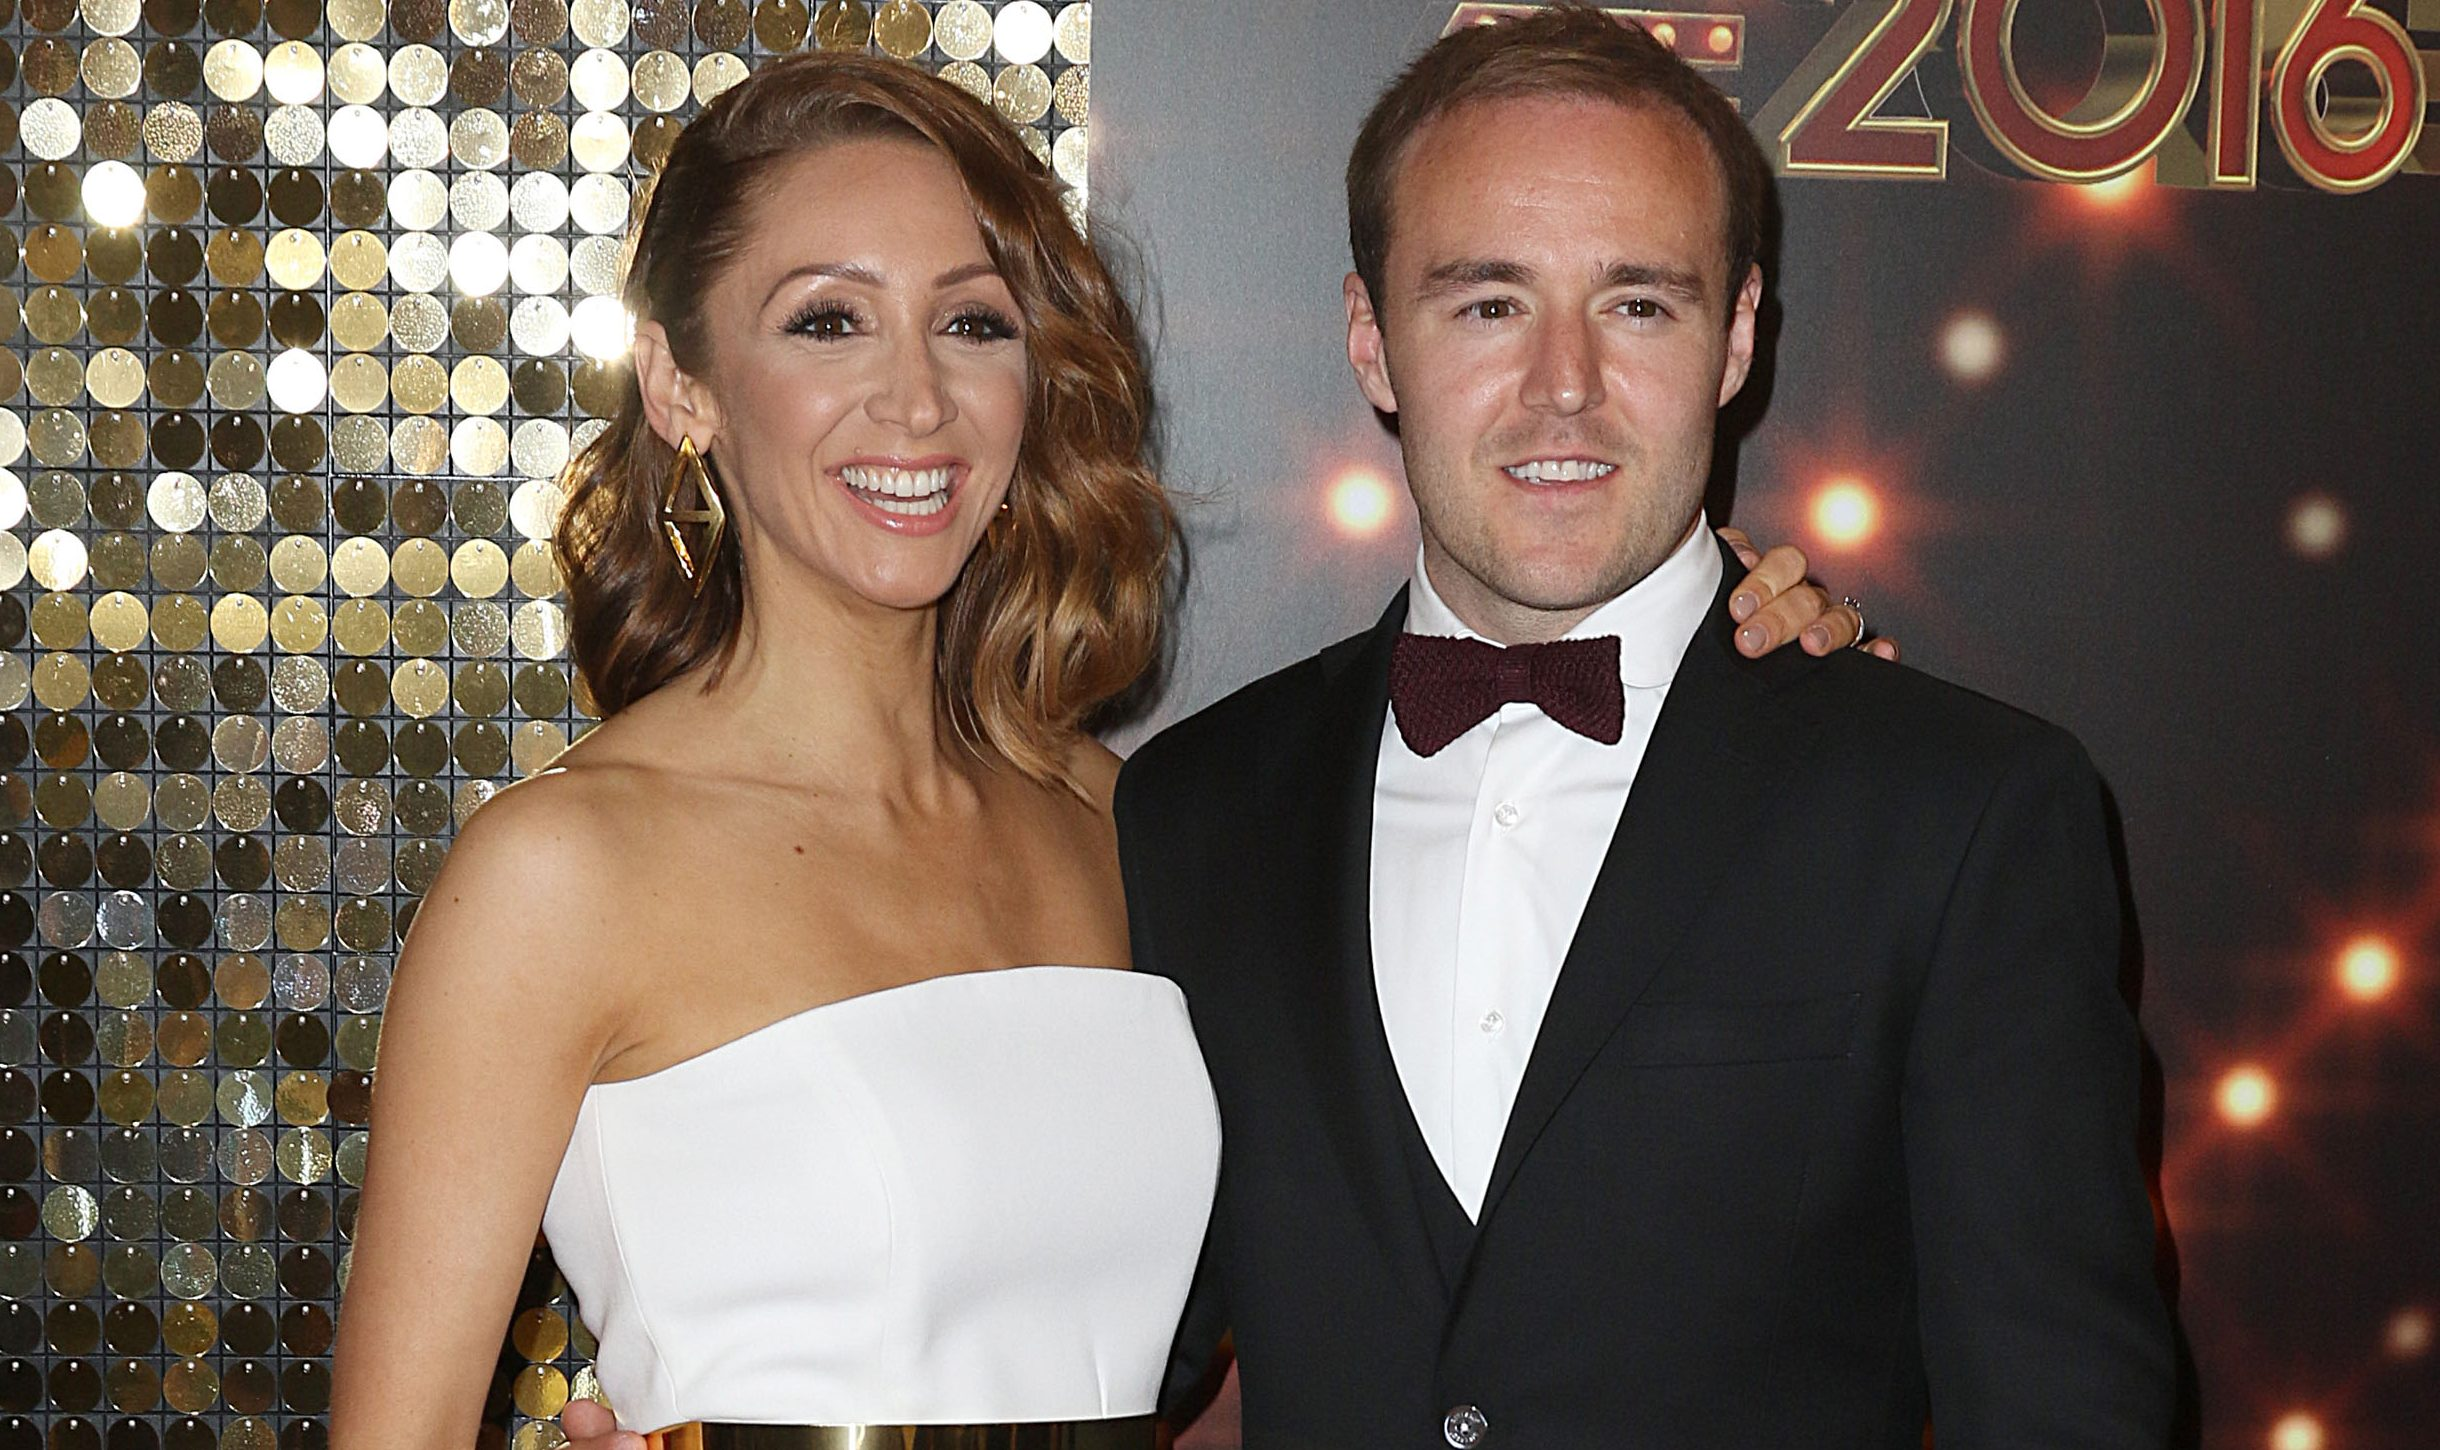 Former Corrie star Lucy-Jo Hudson says co-parenting with ex-husband Alan Halsall is 'difficult'